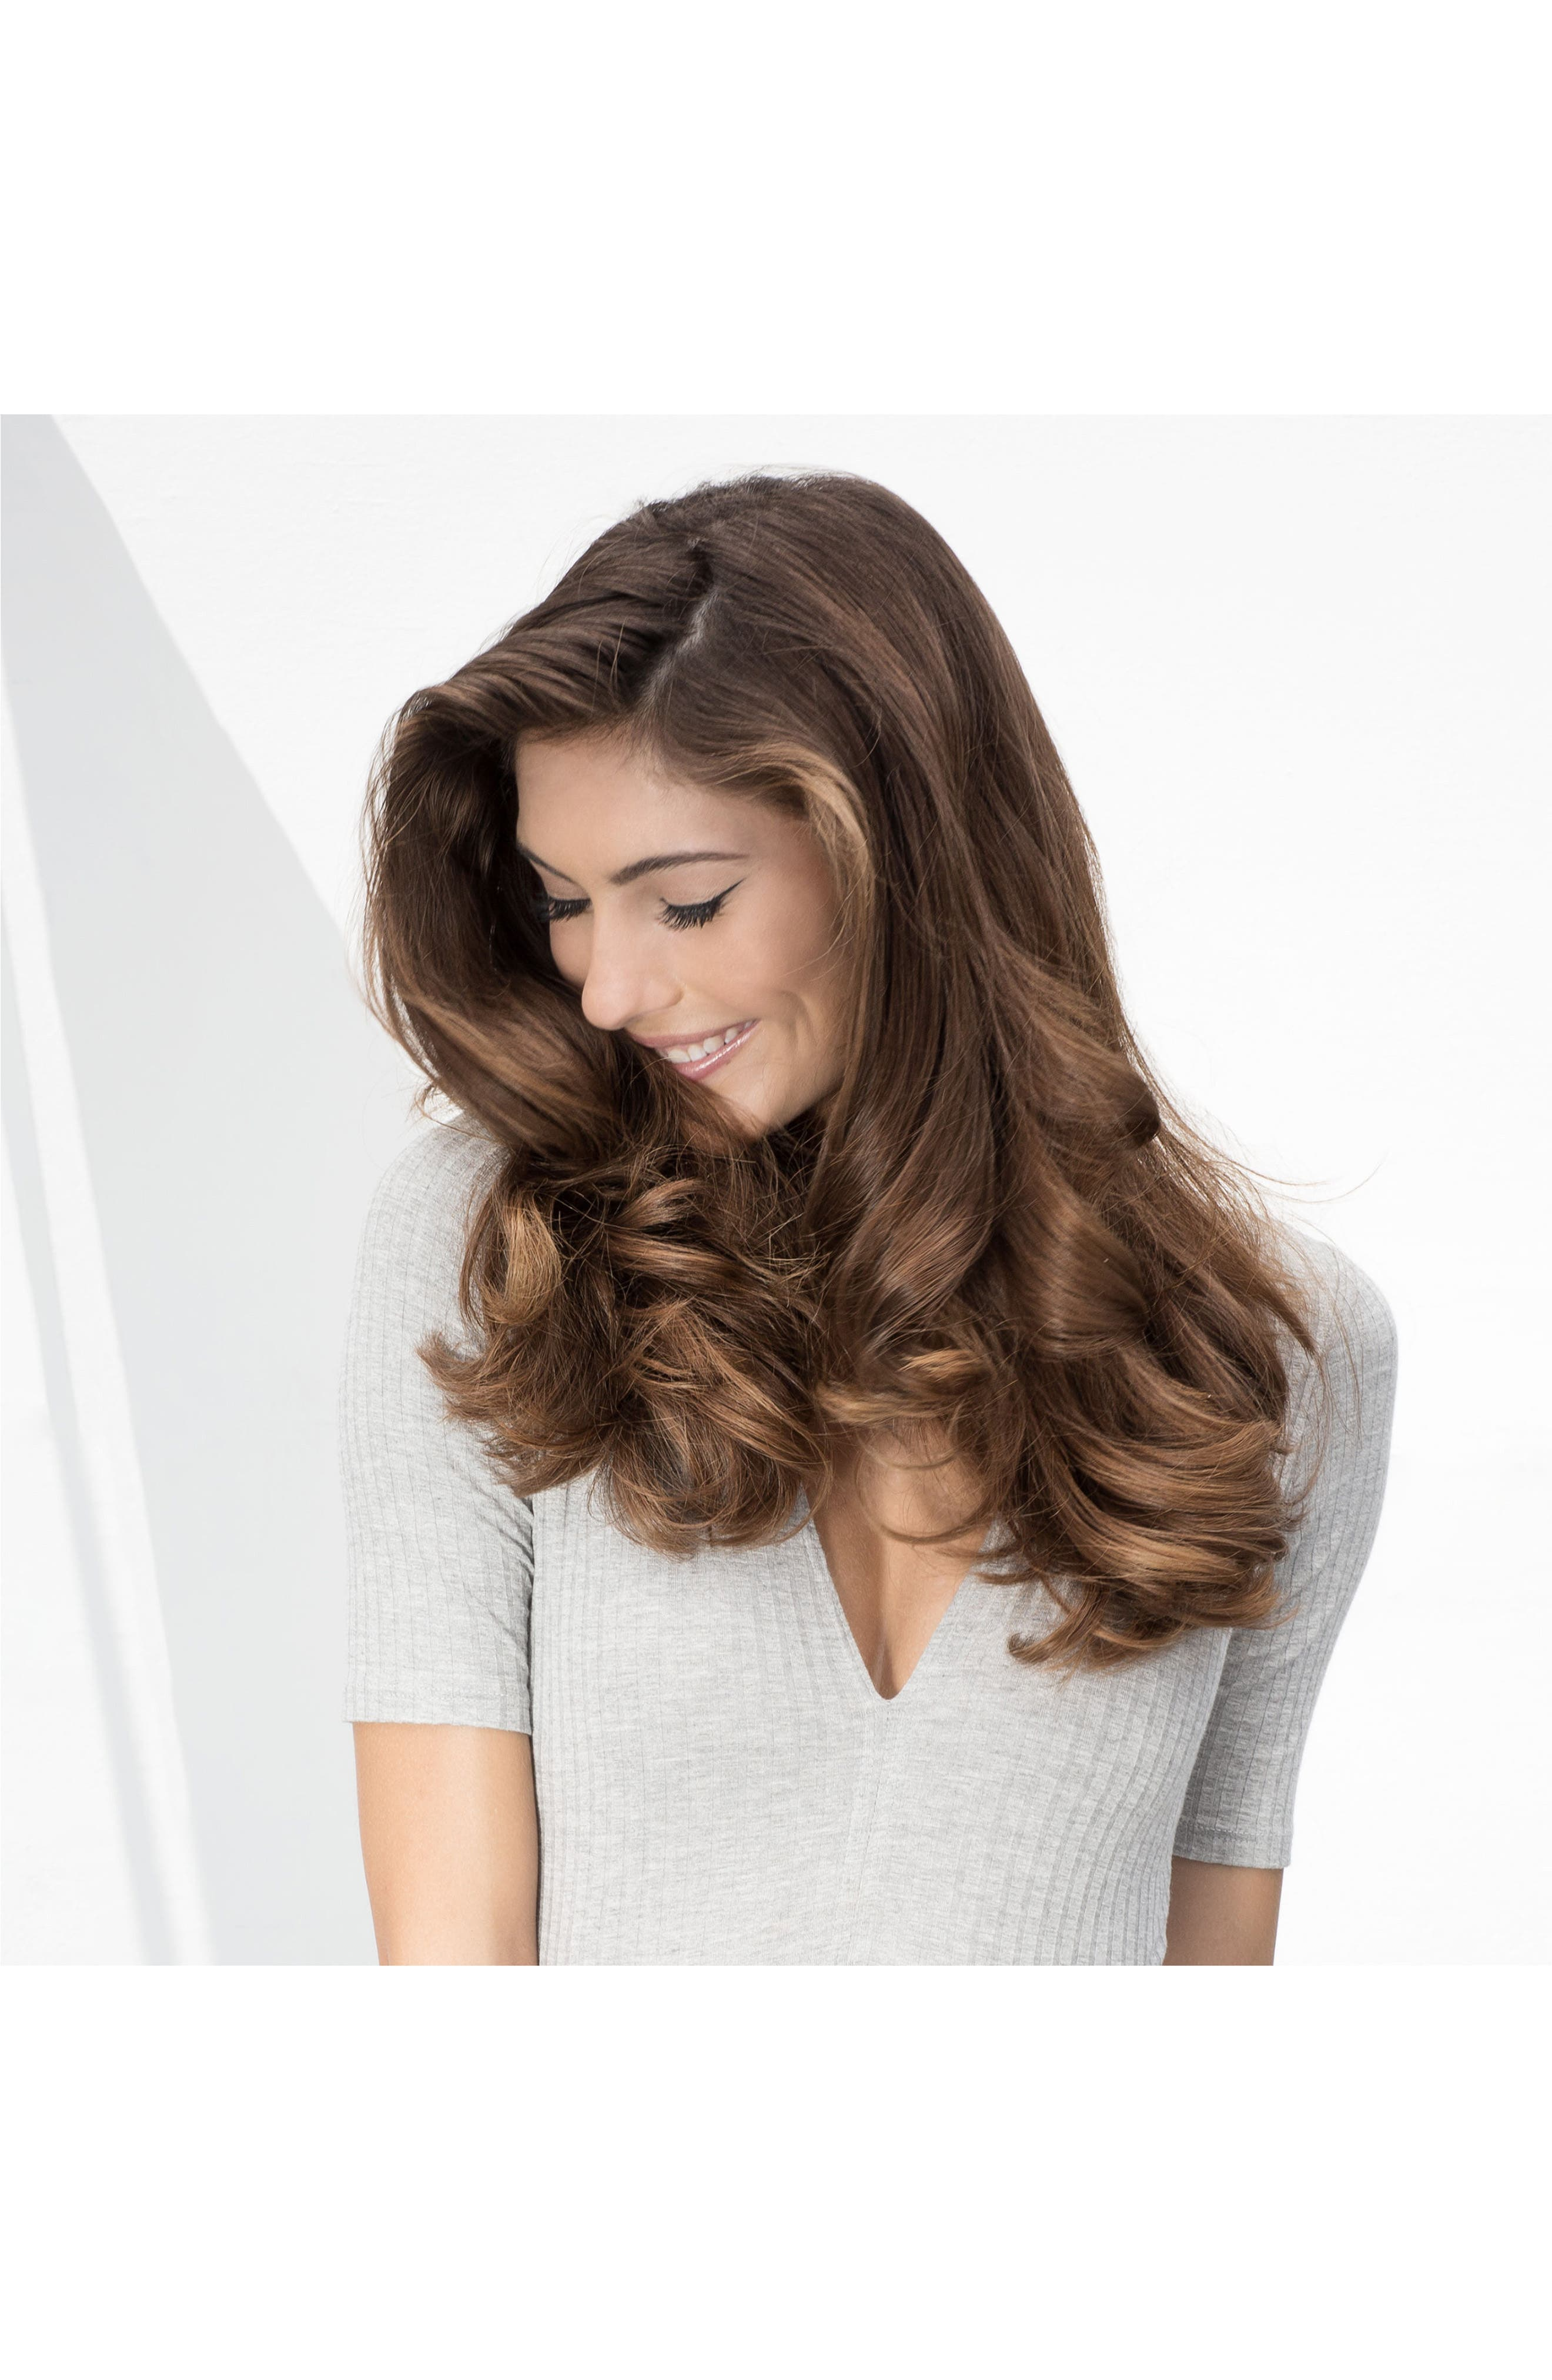 Alternate Image 3  - T3 BodyWaver Styling Iron (1.75 inch)